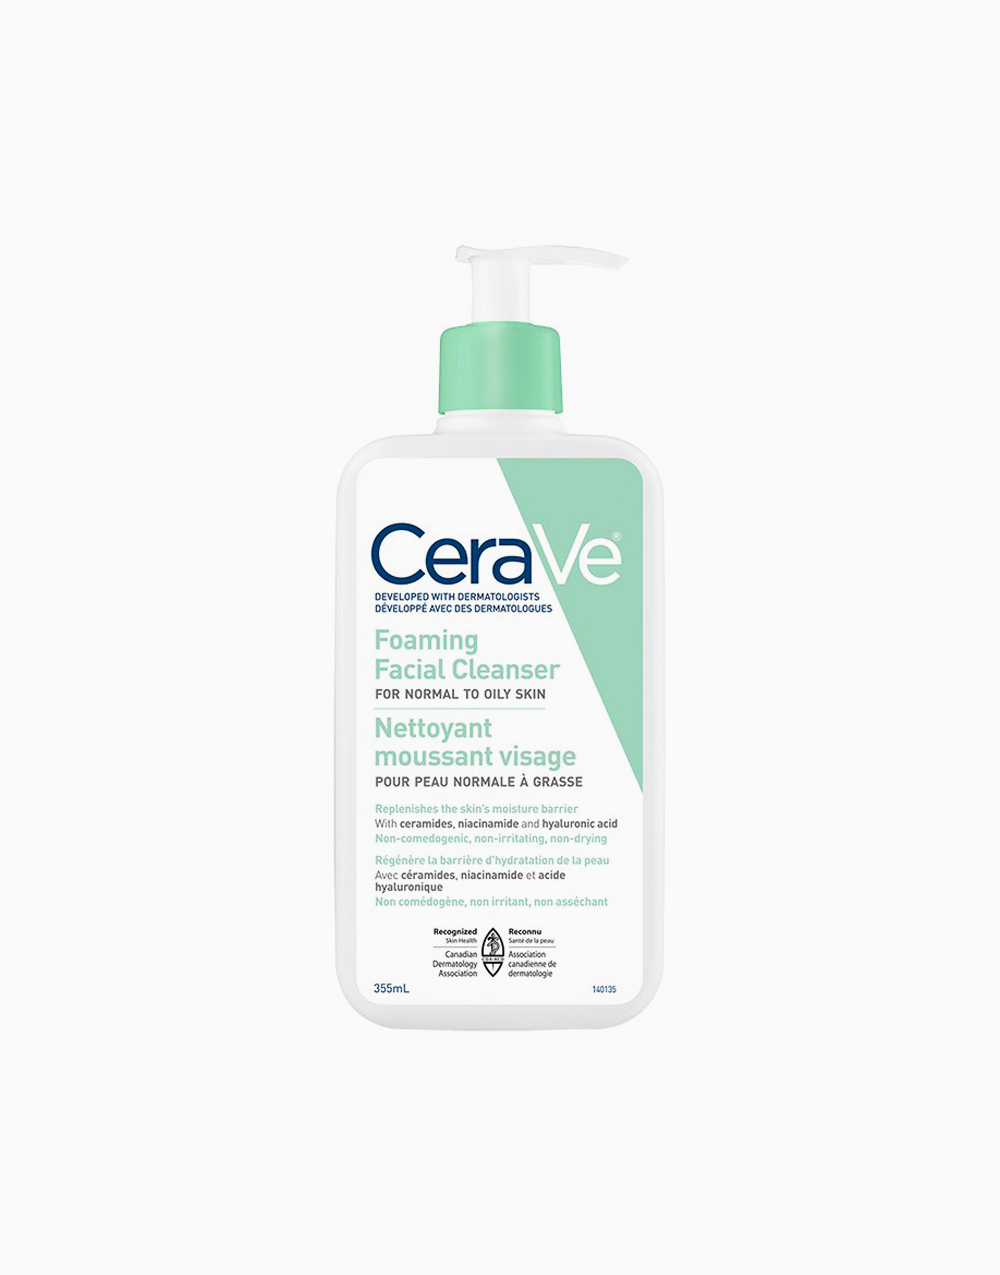 Foaming Facial Cleanser (355ml) by CeraVe